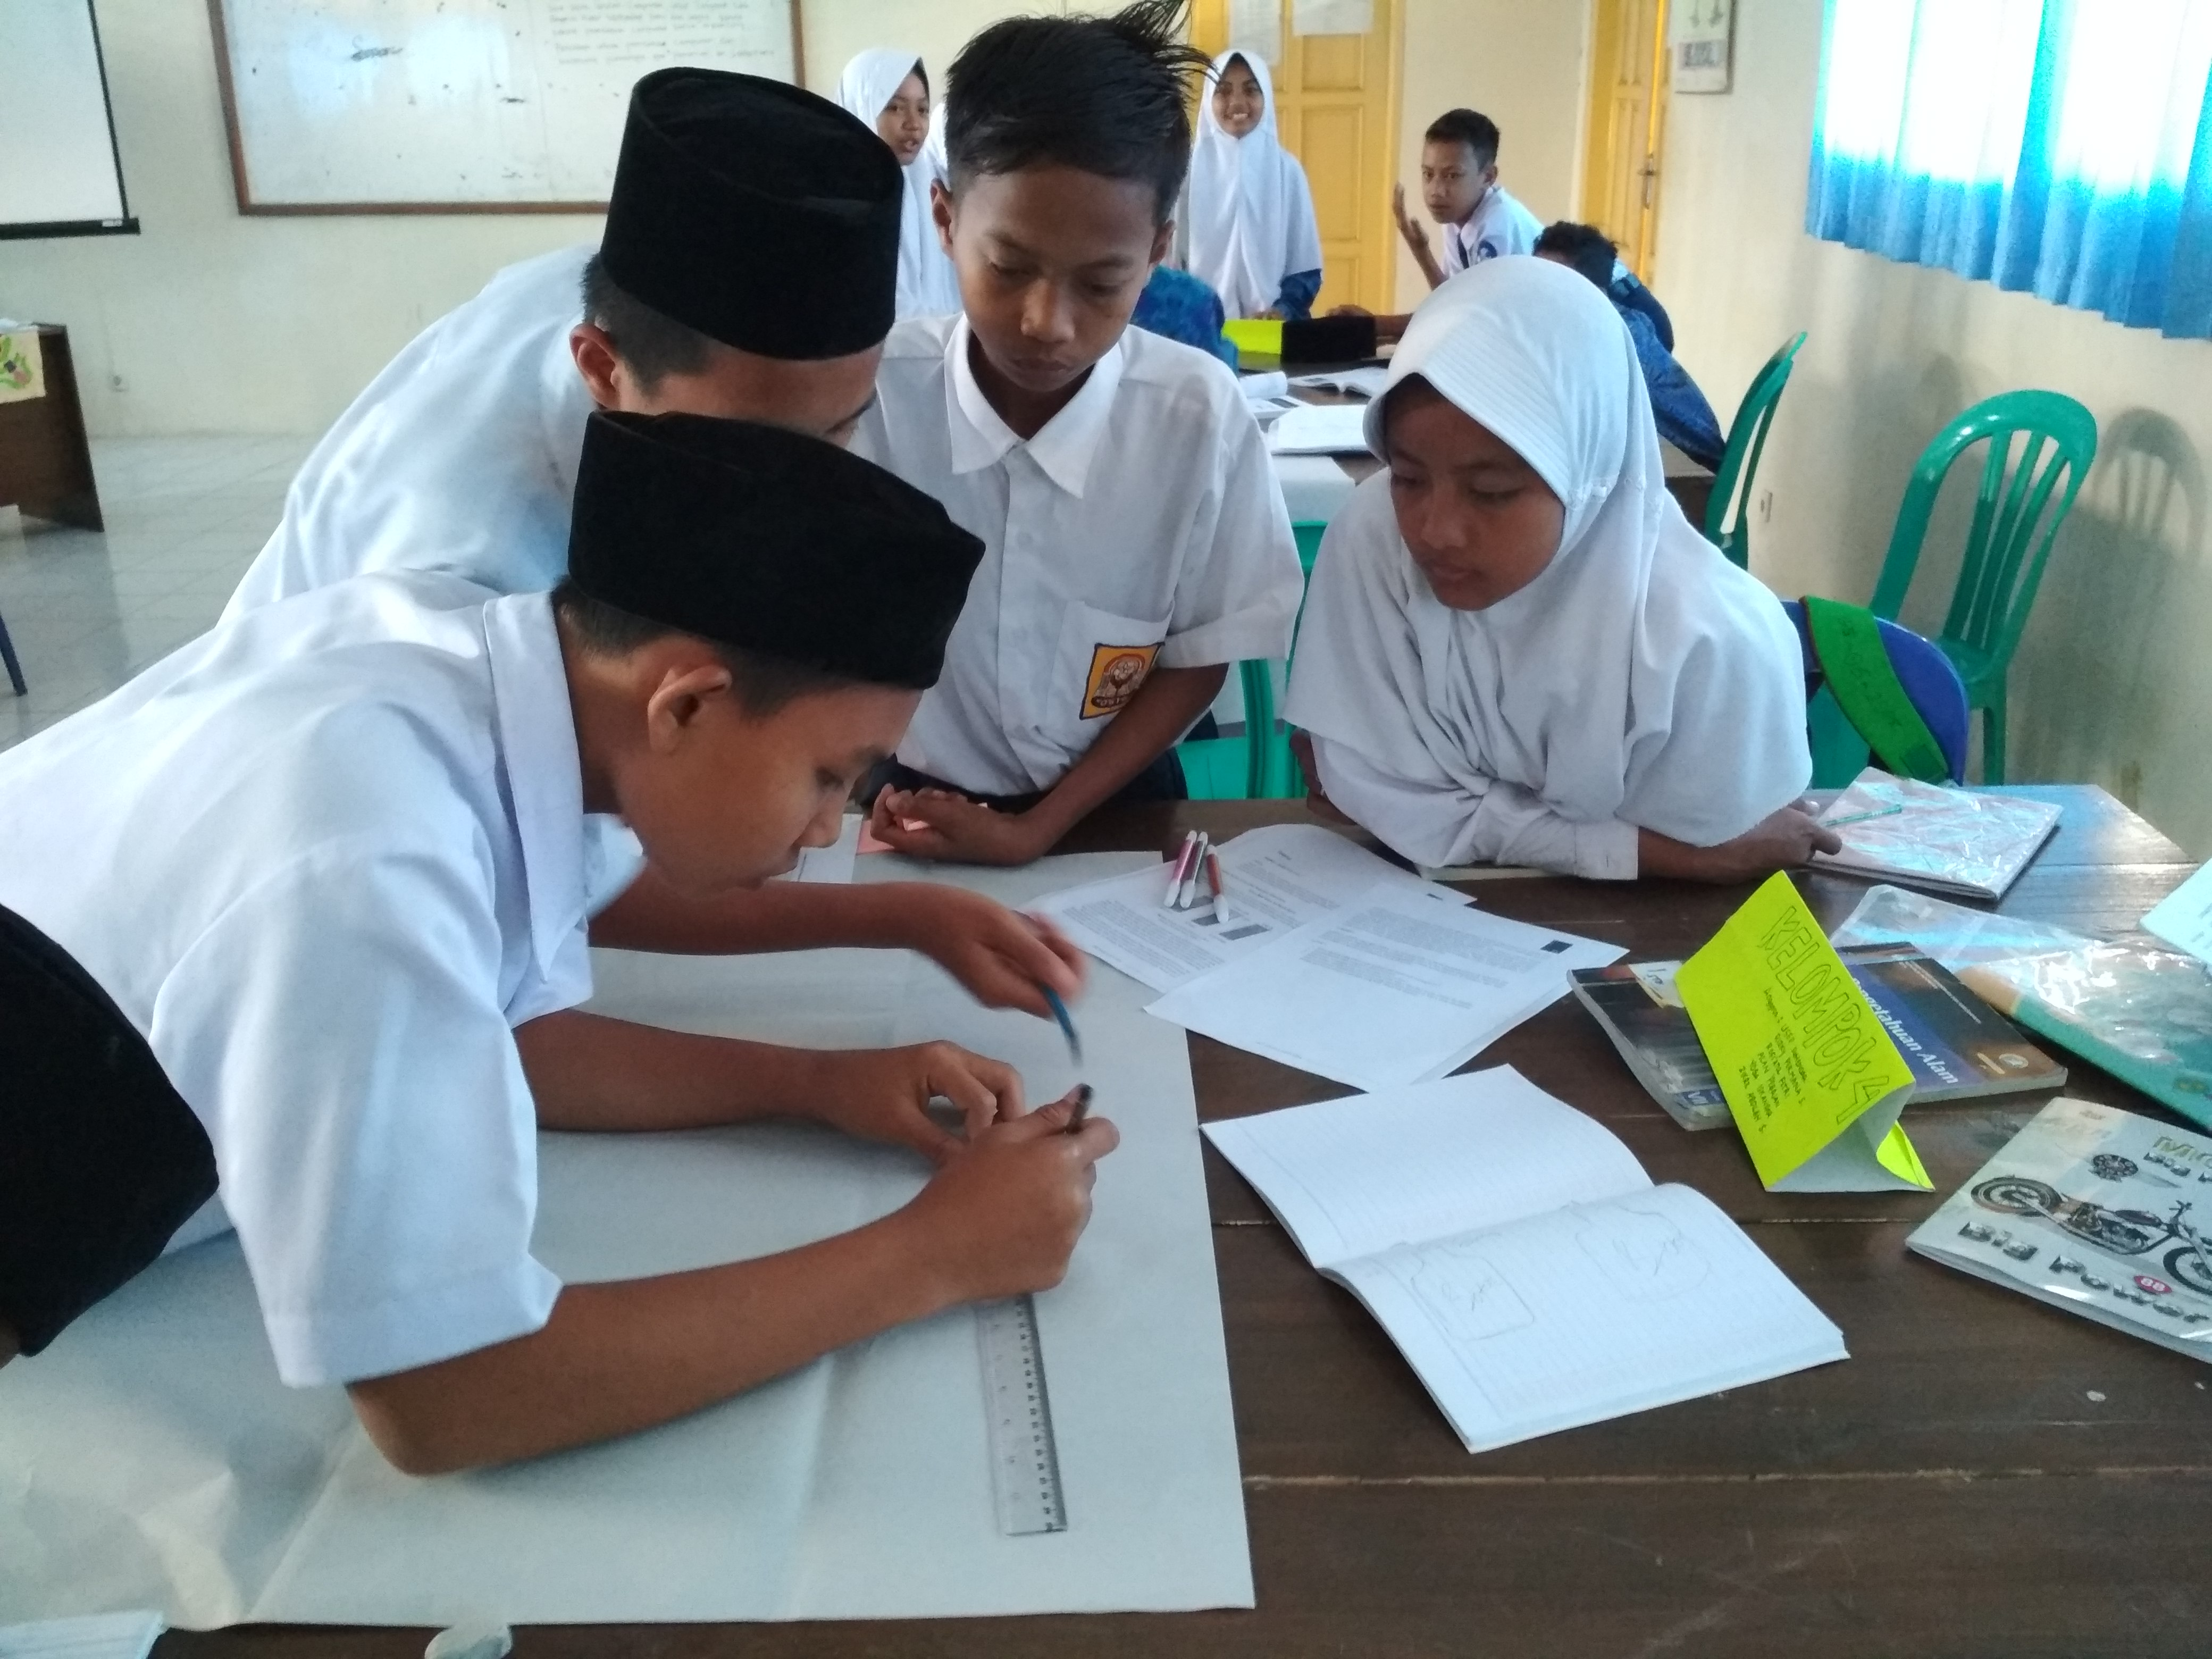 Monitoring on the Job Learning, Training on STEM Implementation in 2013 Curriculum, Secondary School in Tasikmalaya Regency